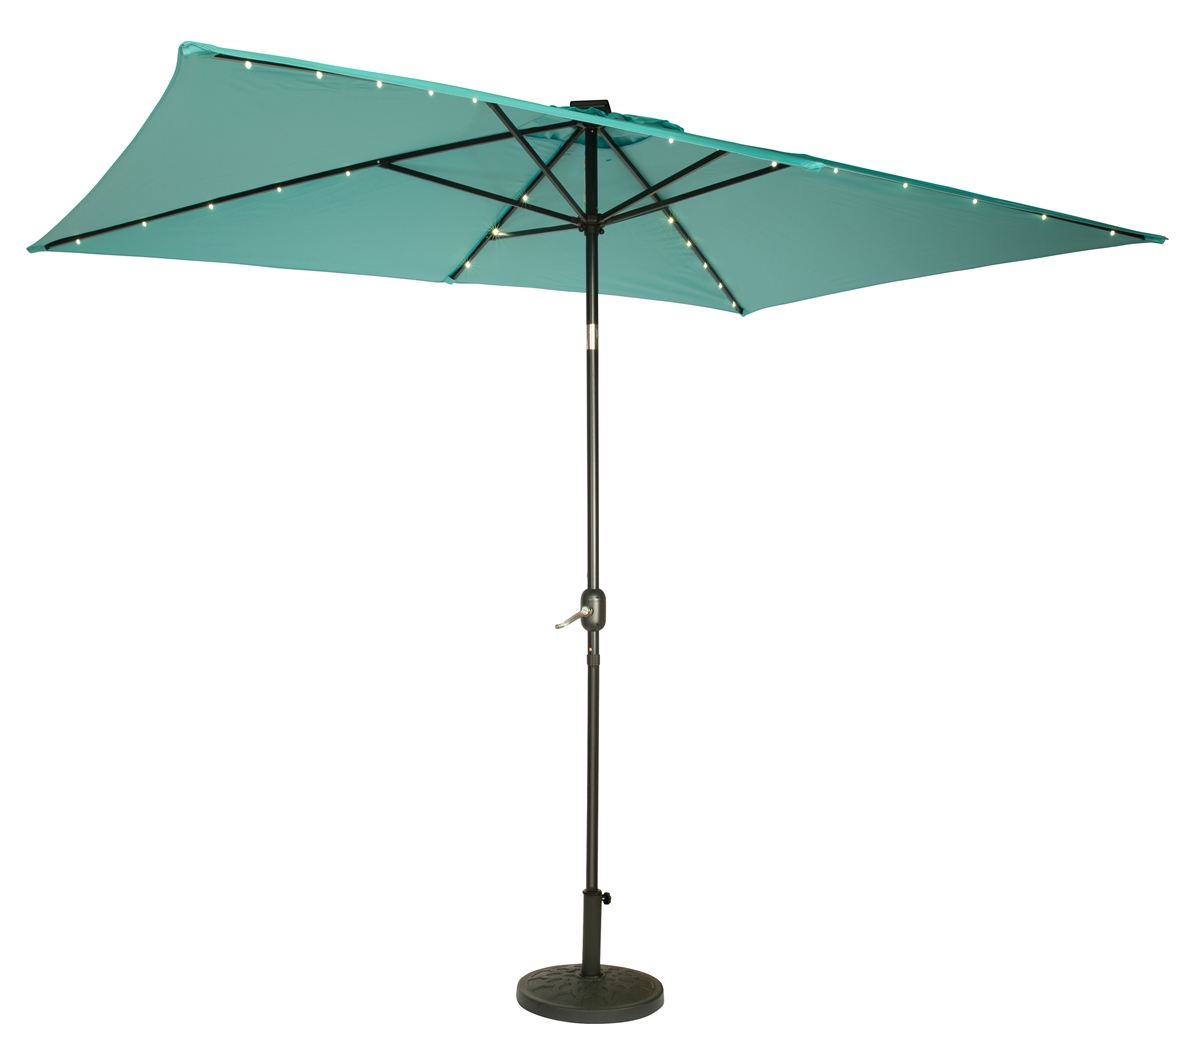 10 x 65 rectangular solar powered led lighted patio umbrella by trademark innovations teal - Rectangle Patio Umbrella